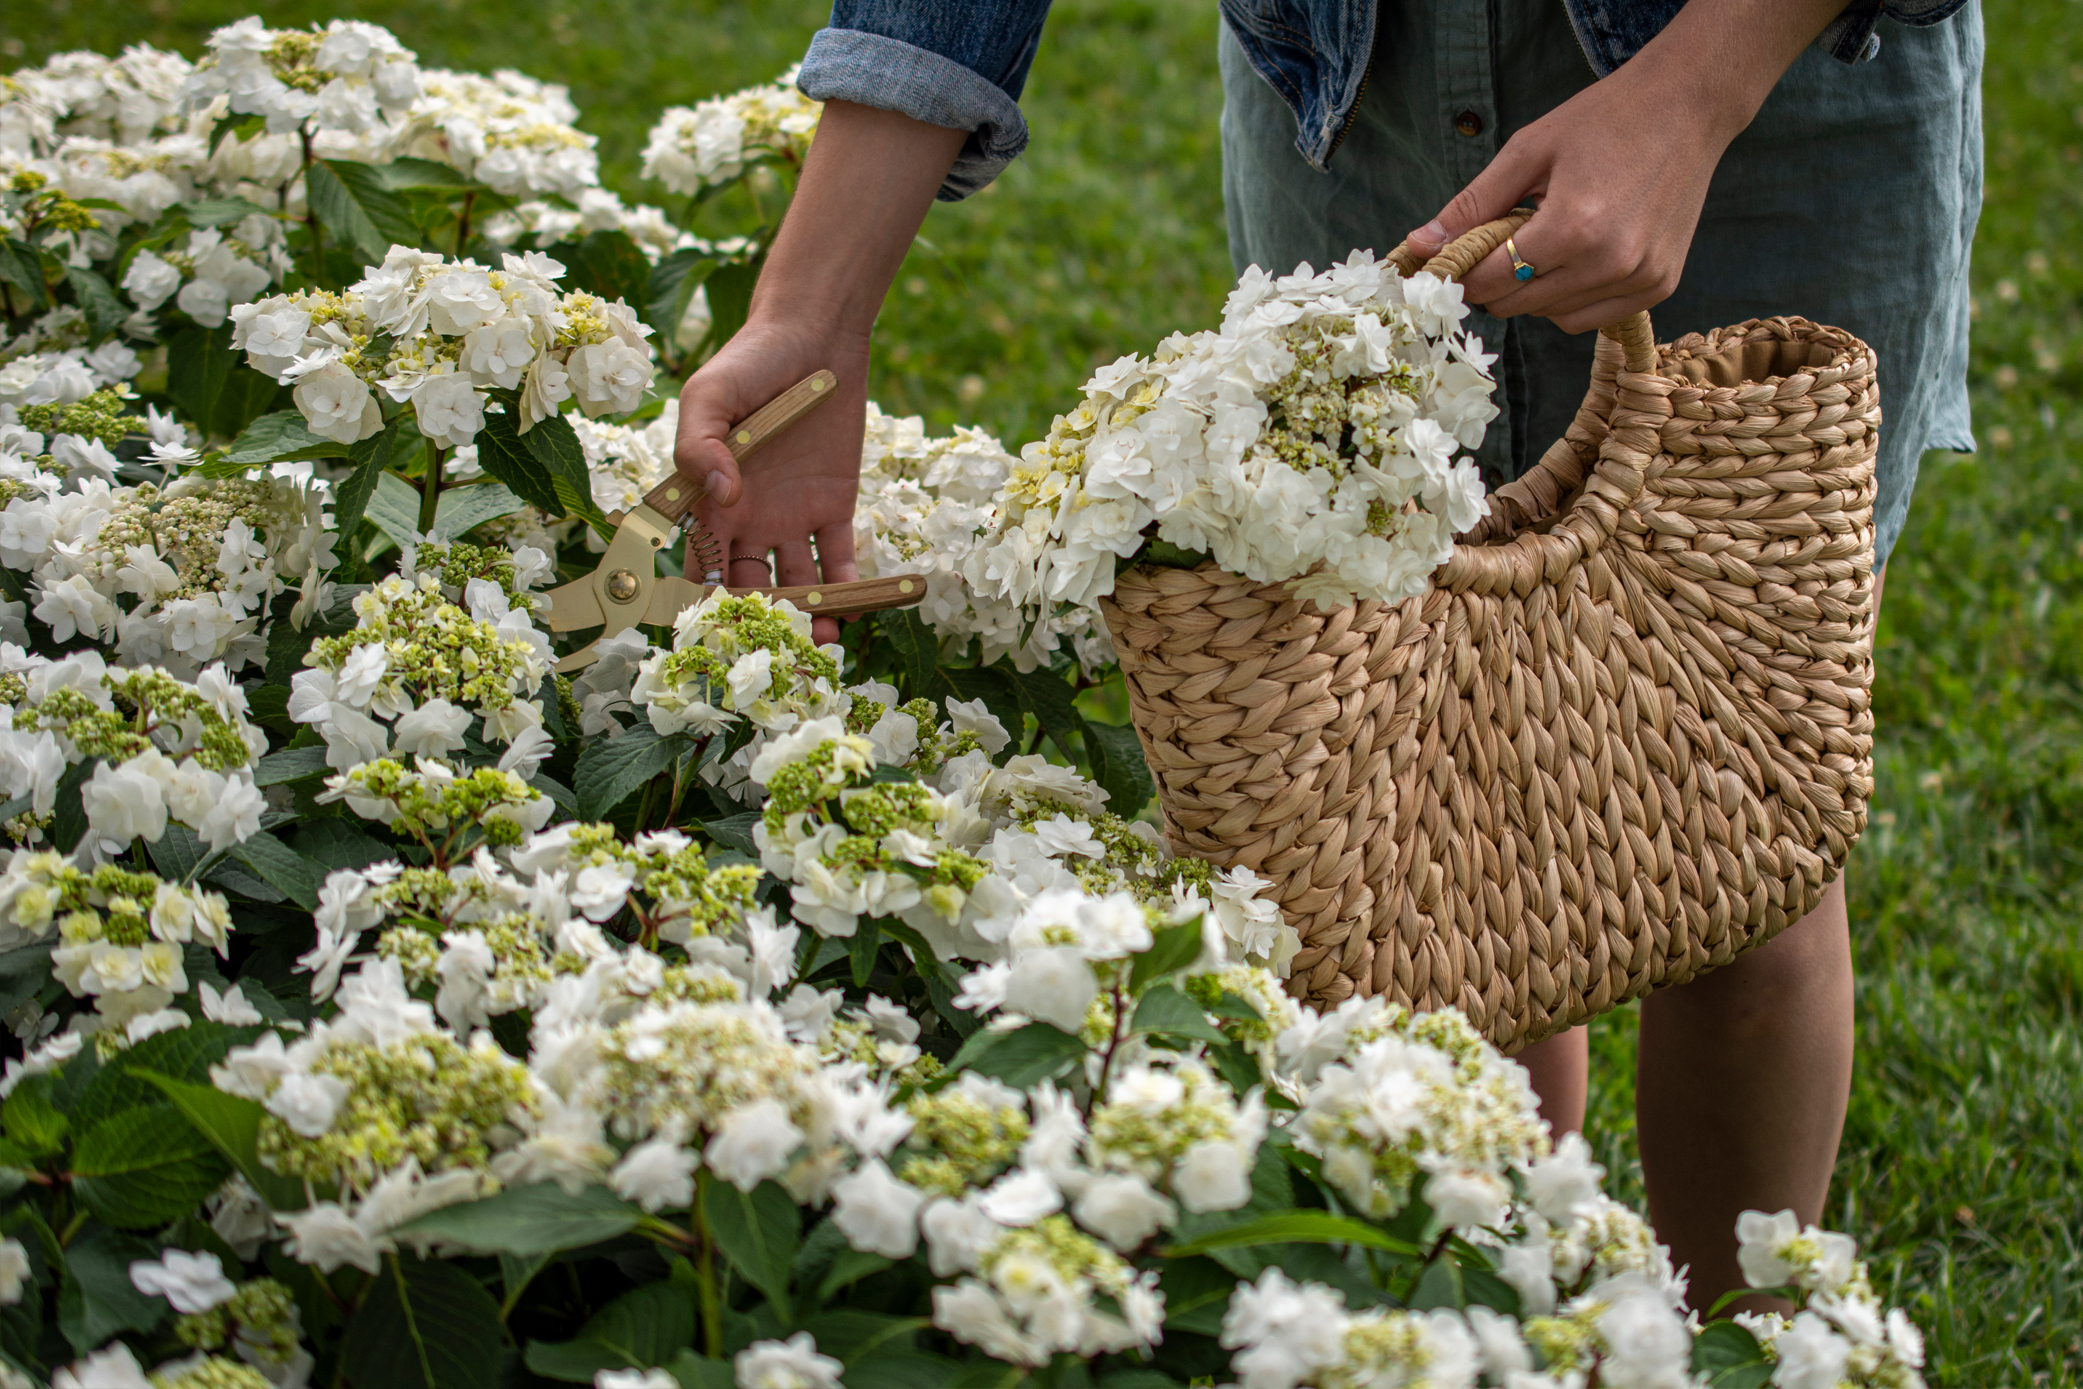 Hydrangea Wedding Gown delights with pure white blooms against dark green foliage.